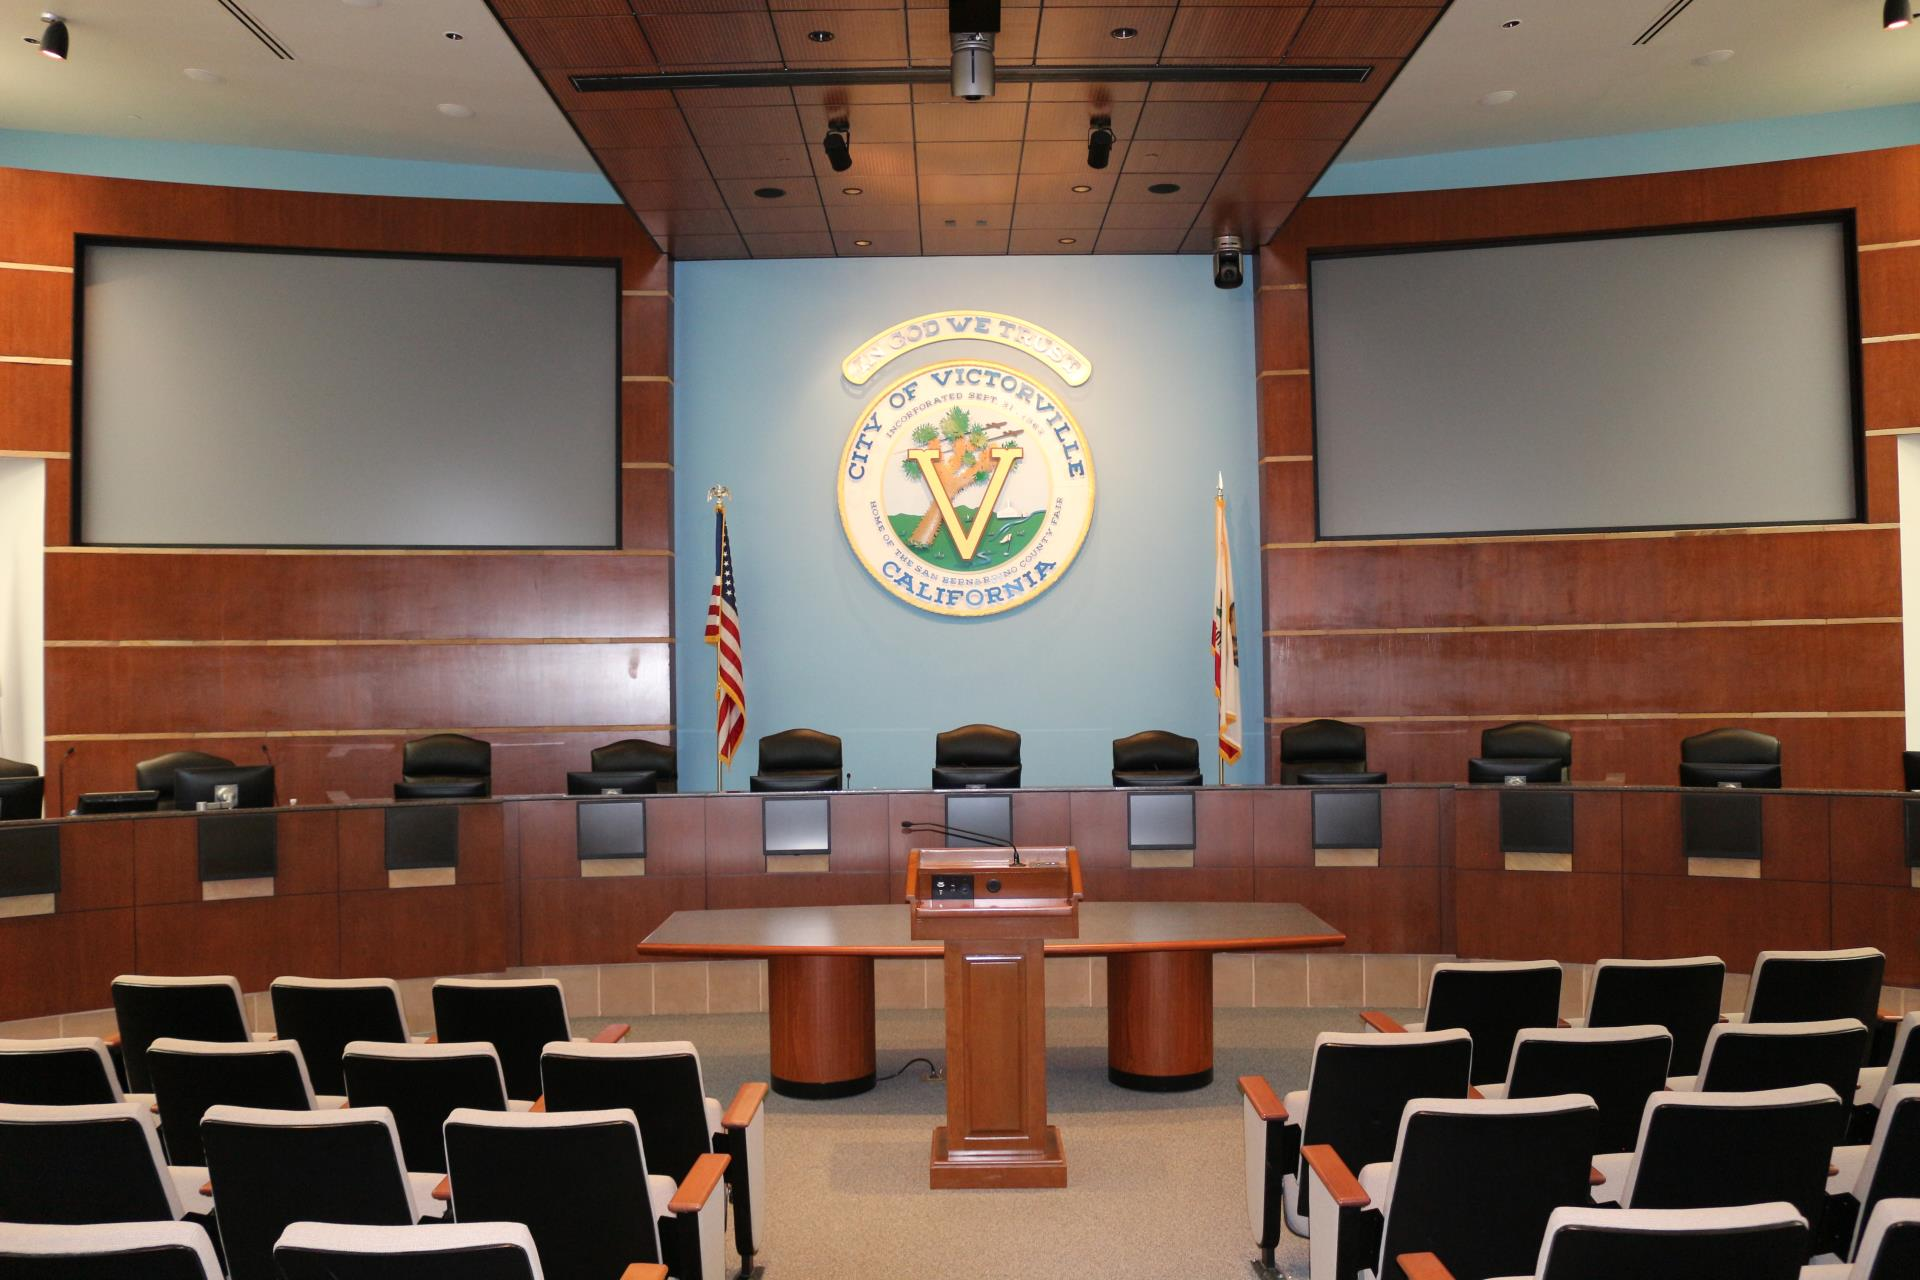 City of Victorville Council Chambers